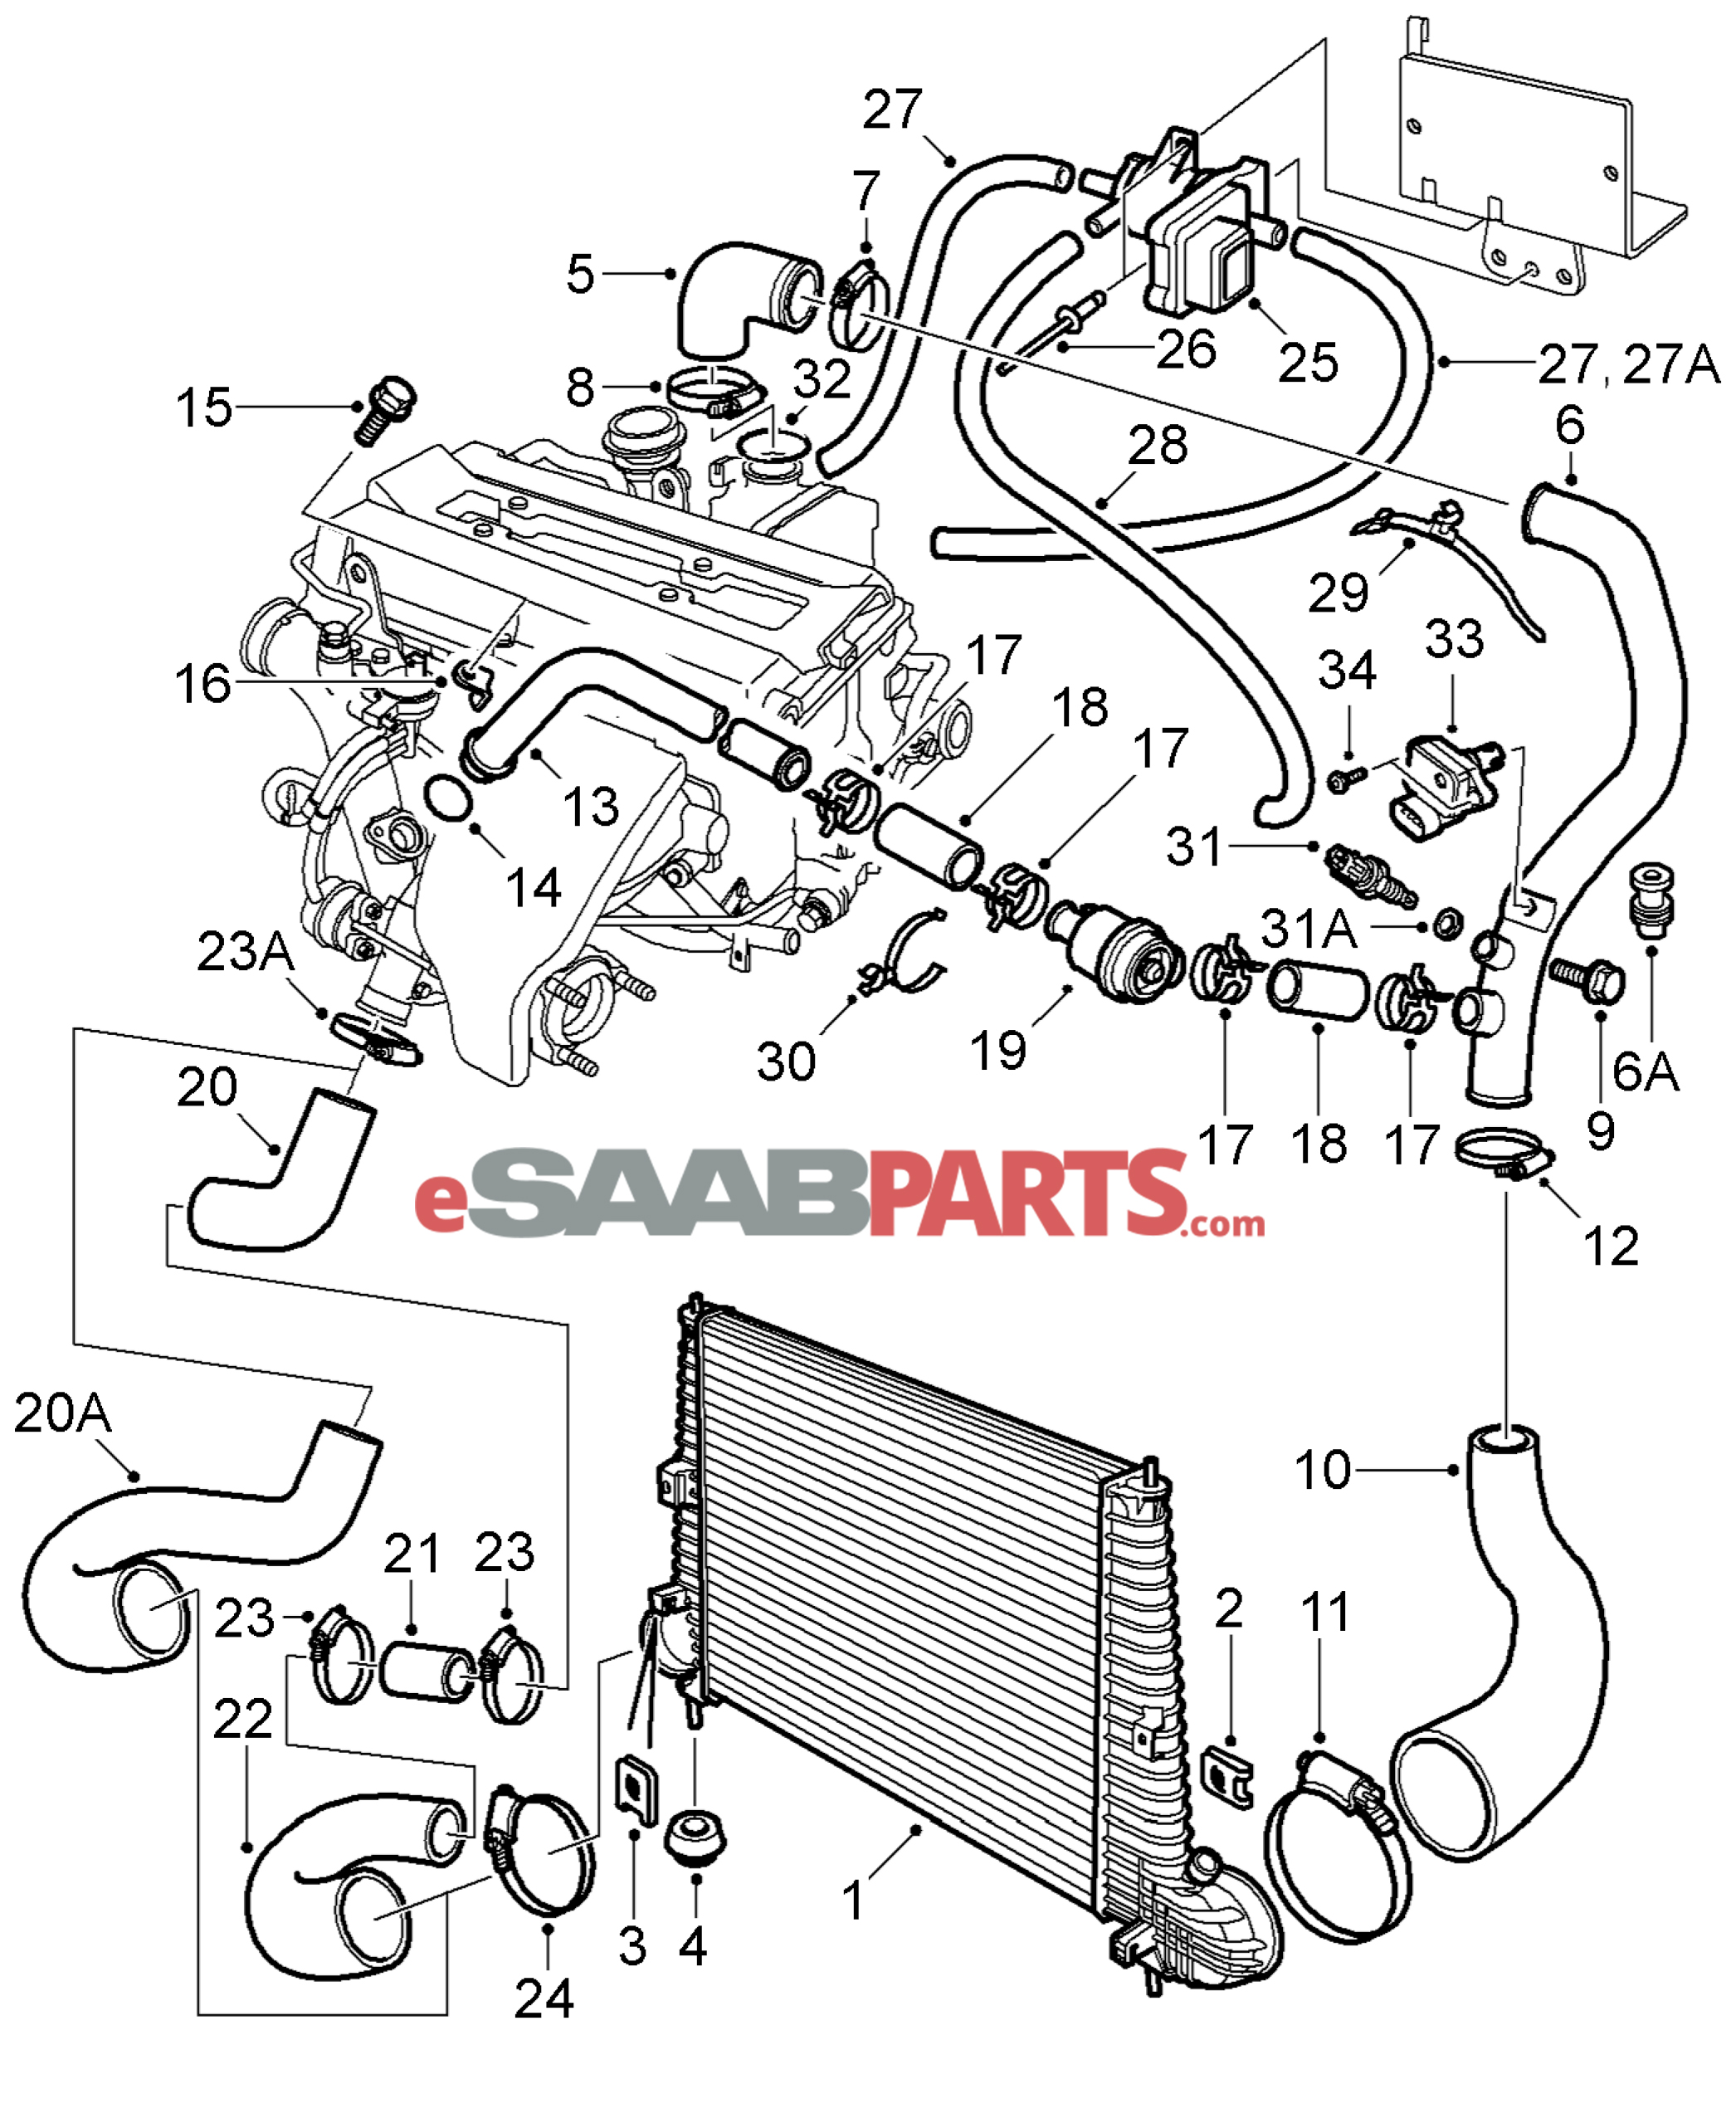 Saab 9 3 Linear Engine Diagram Saab 9-3 2.0T Engine Wiring